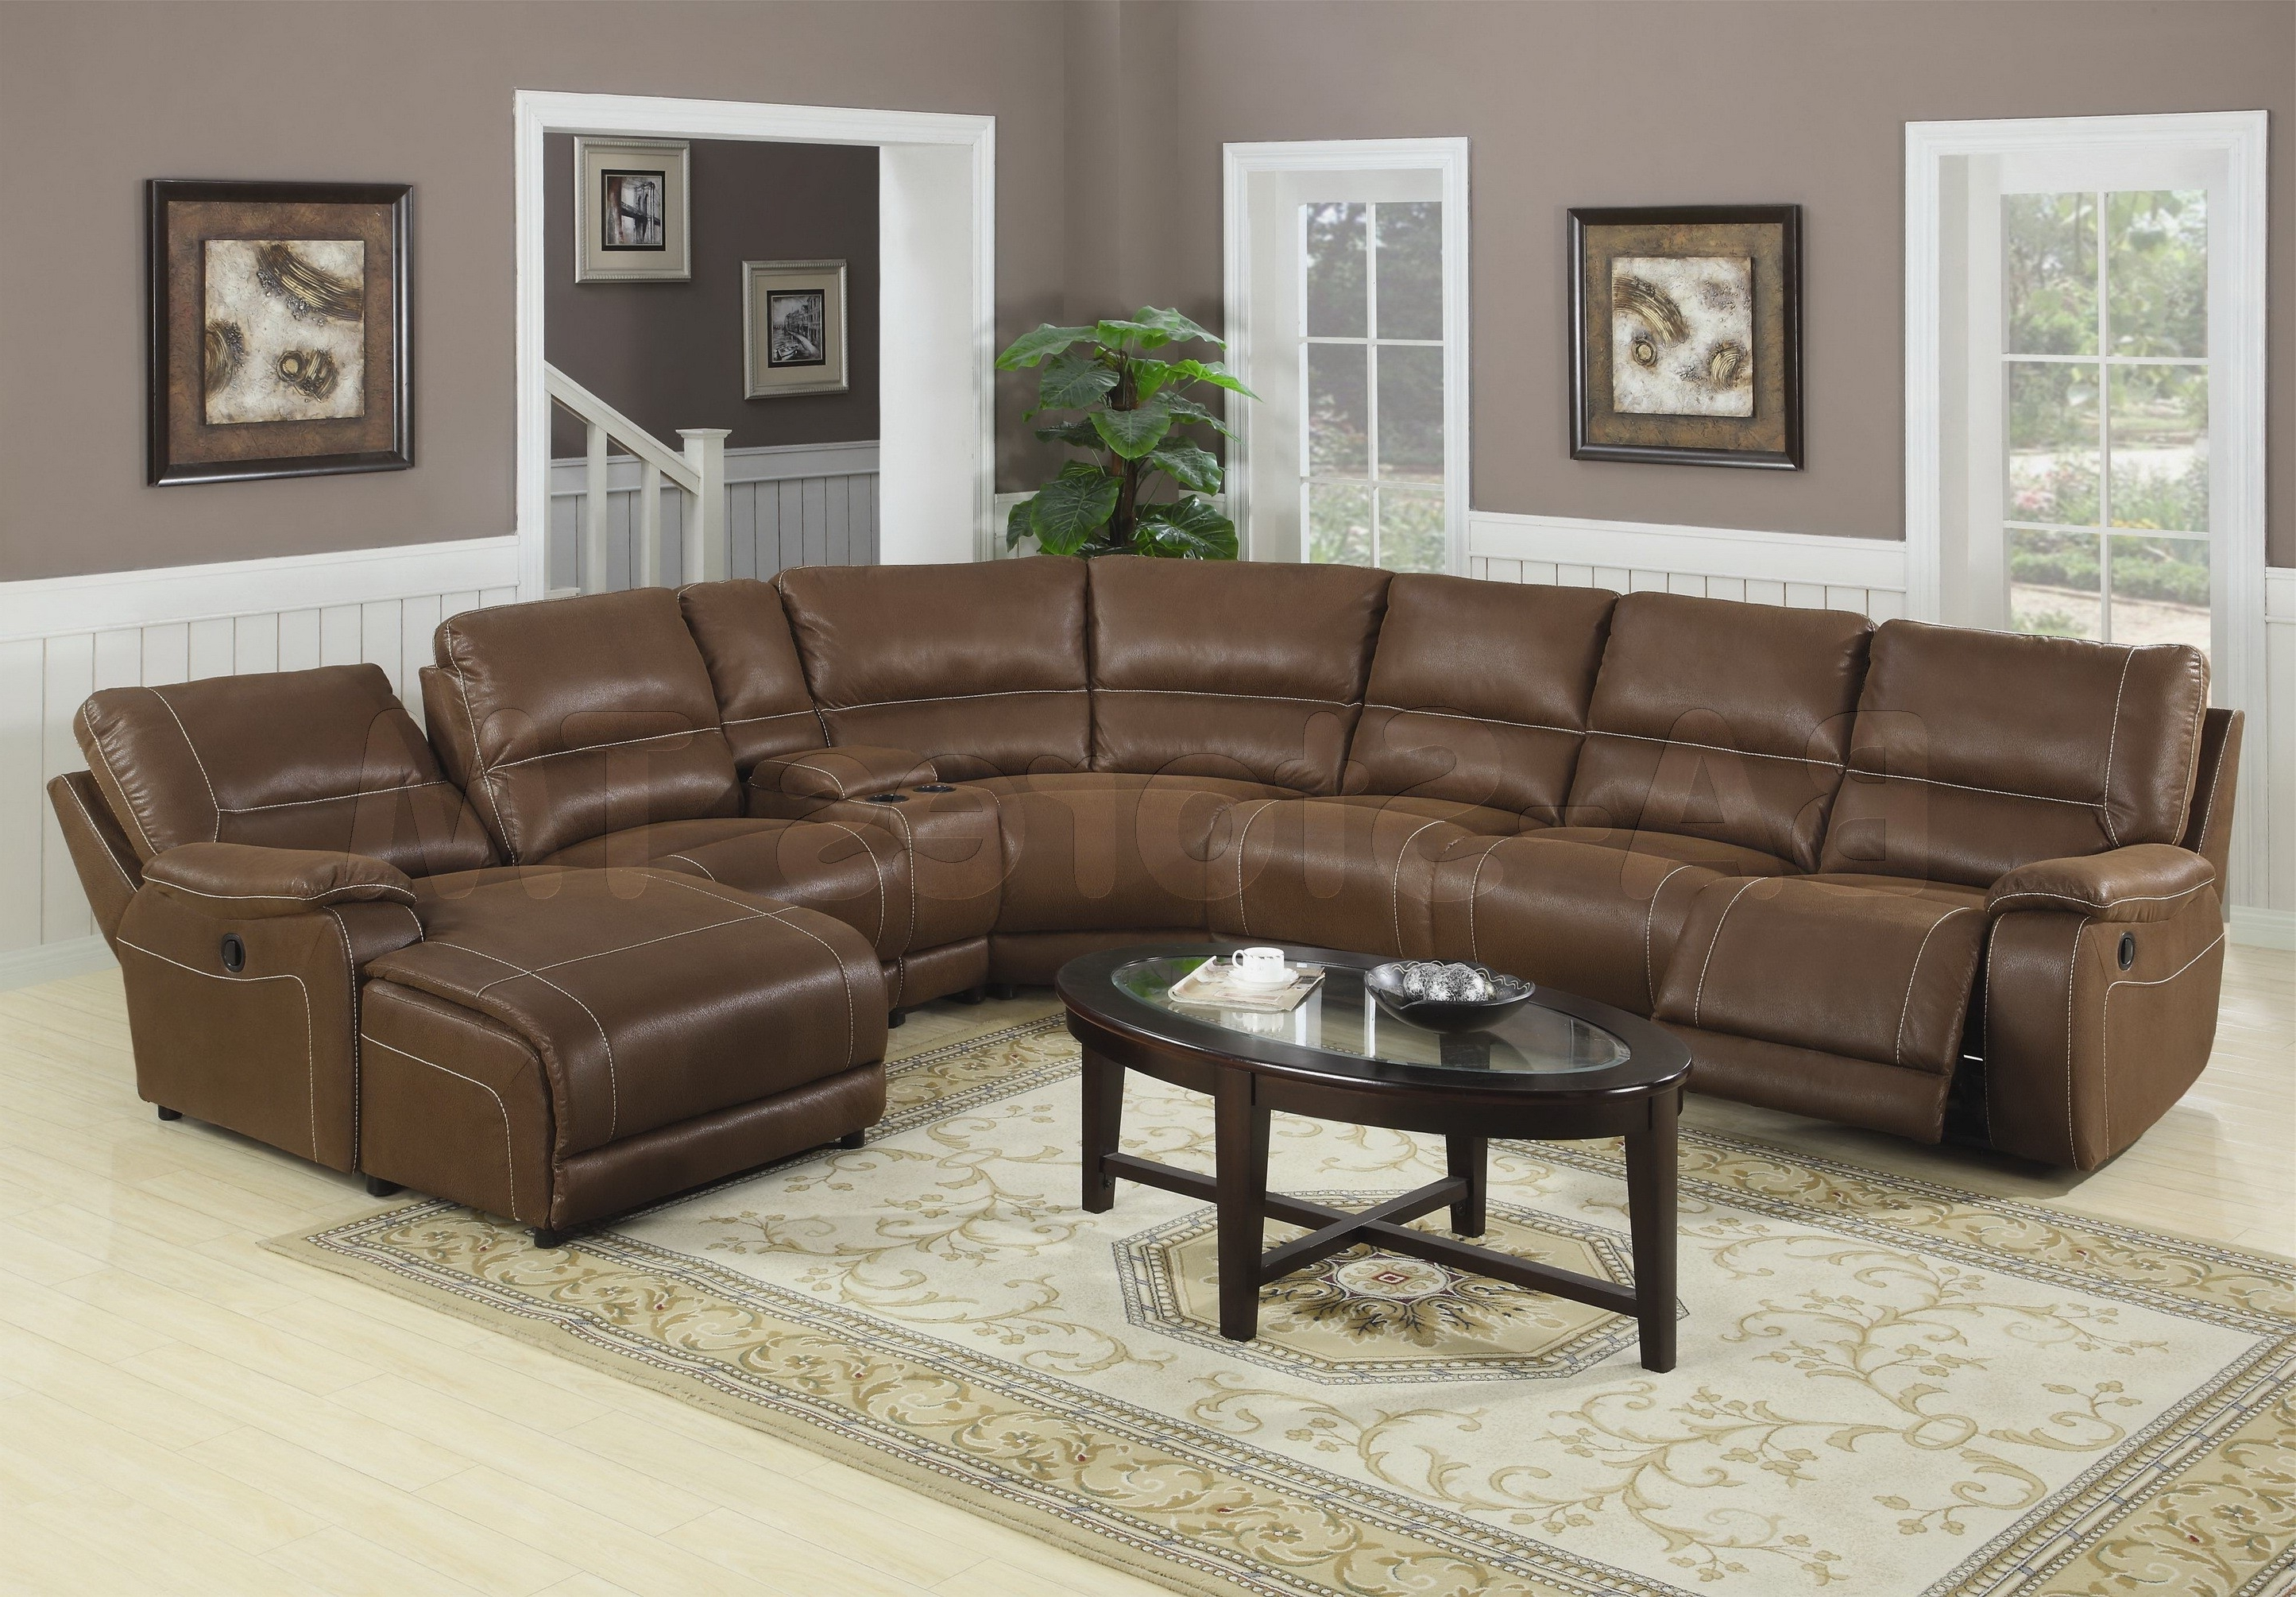 Extra Large Sectional Sofas With Current Extra Large Leather Sectional Sofa With Recliner And Chaise Feat (View 12 of 20)